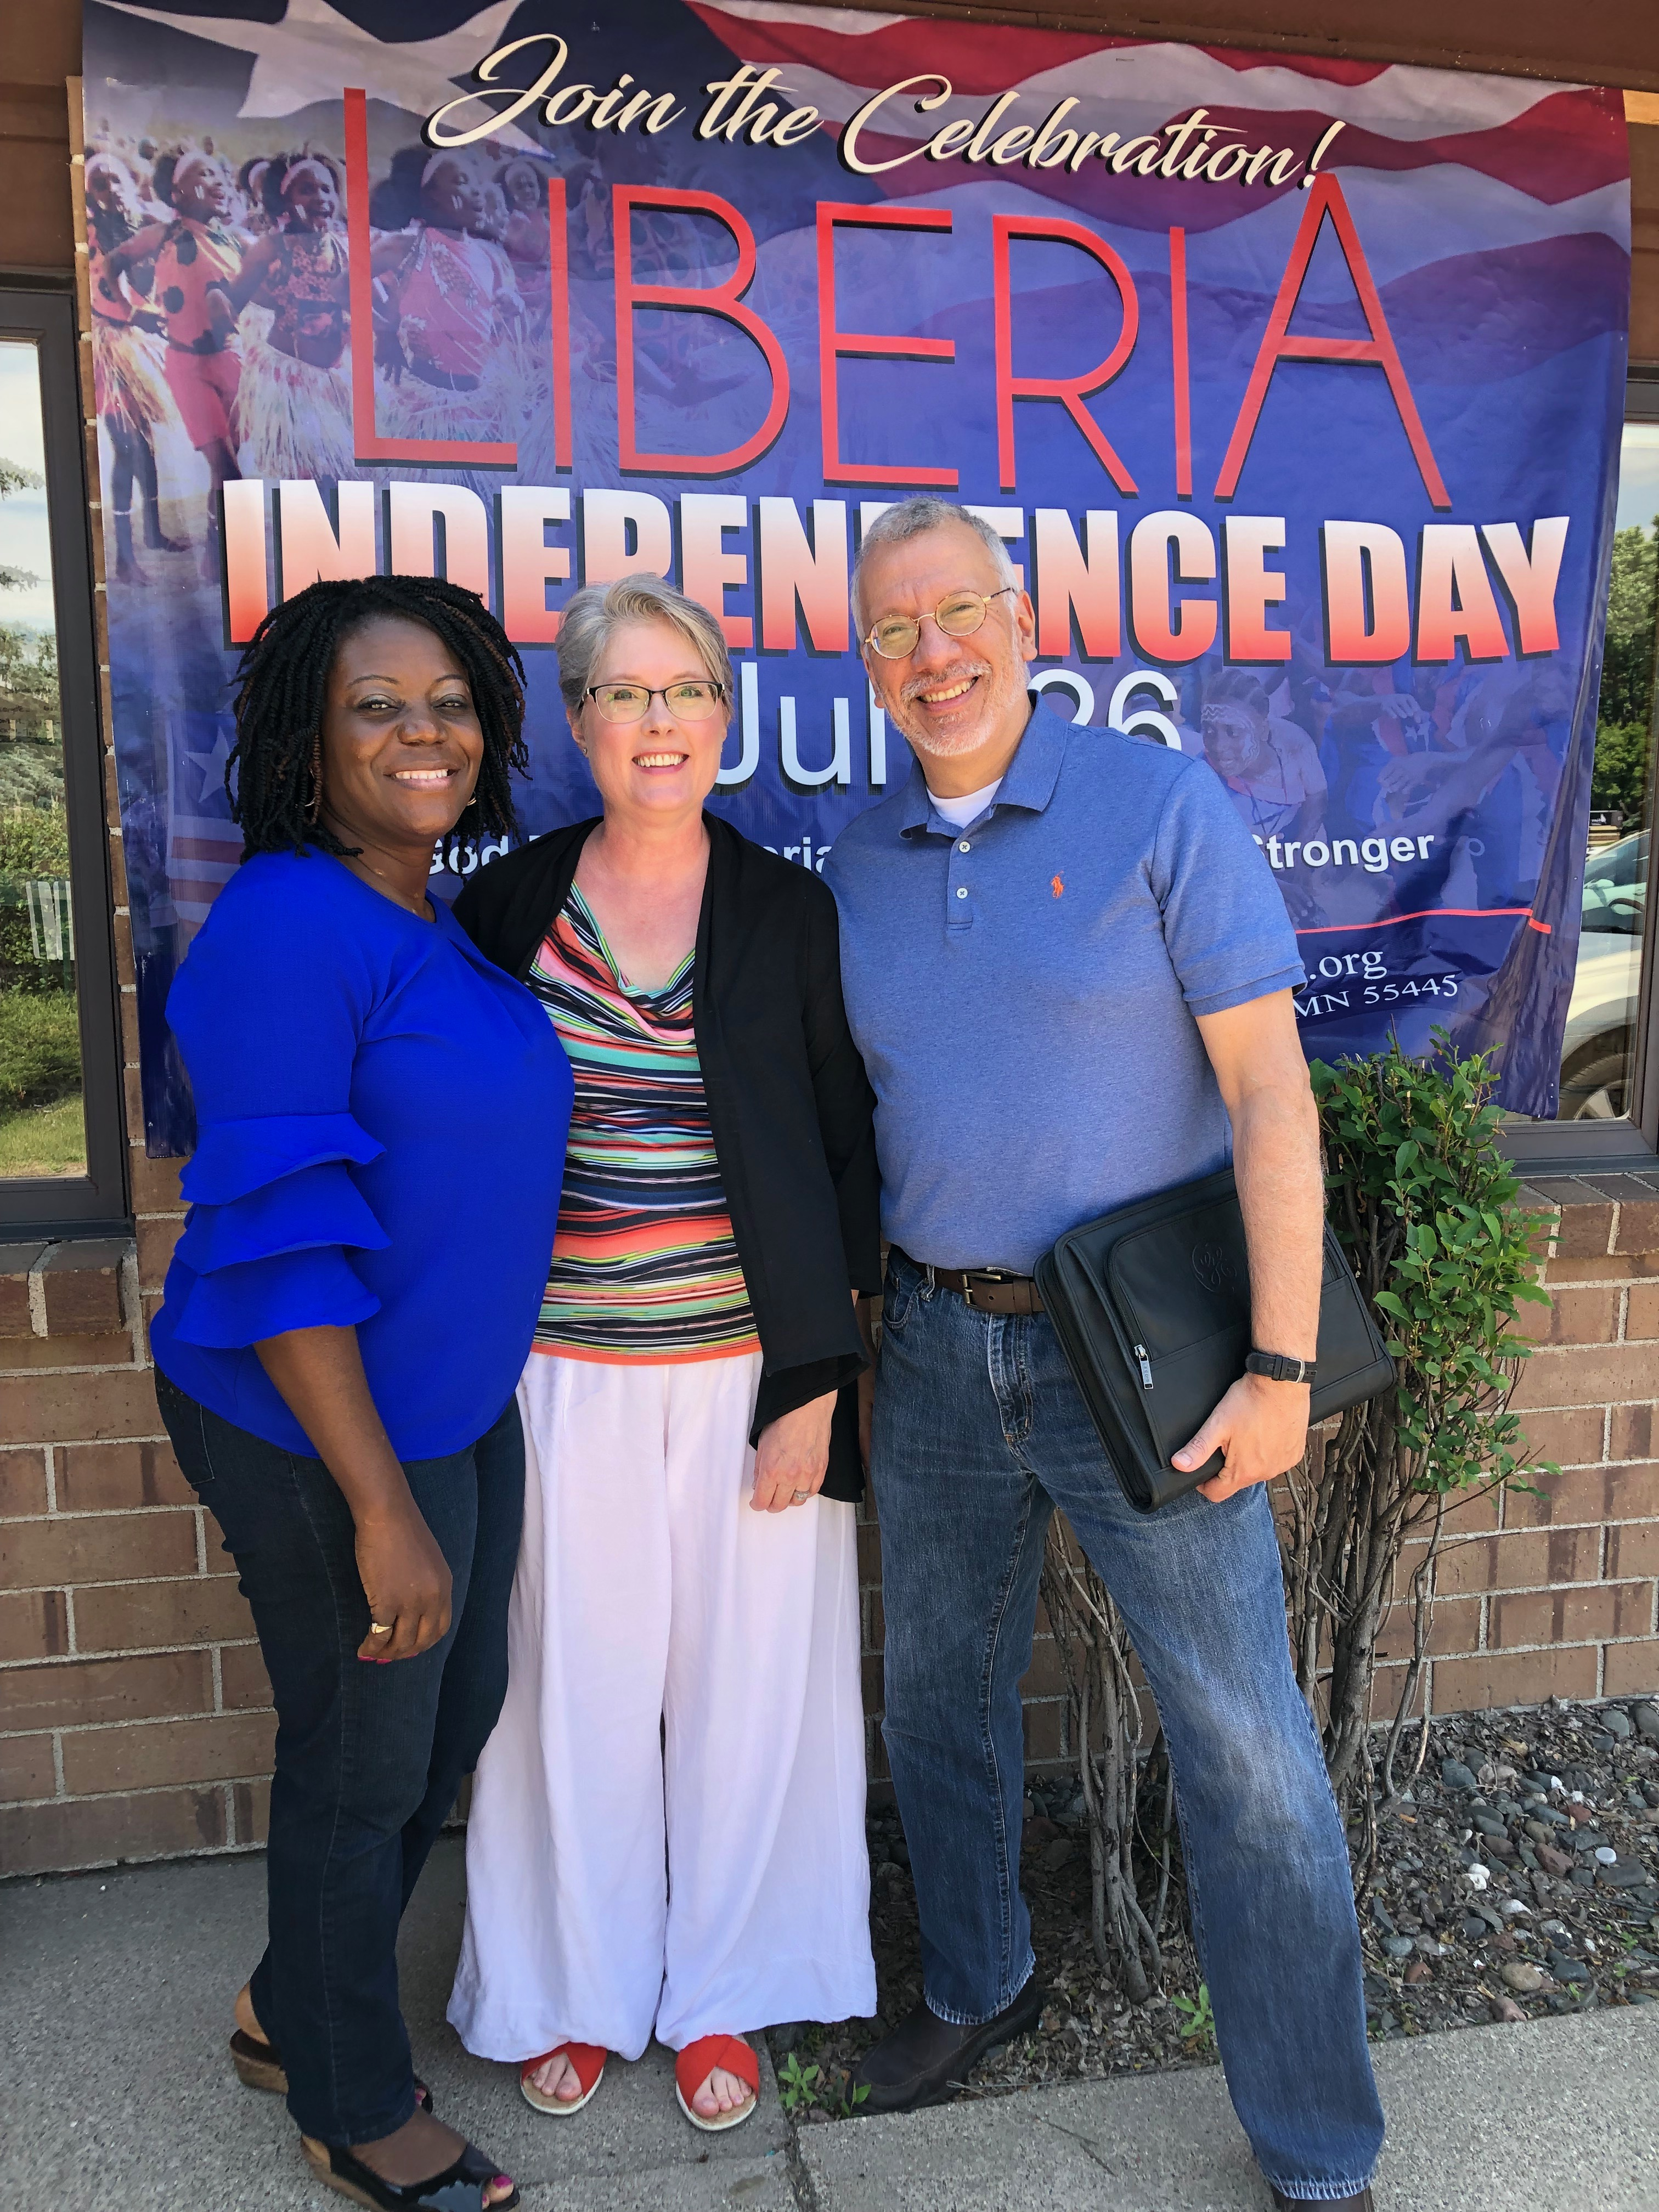 June 20, 2019 Meeting with Georgette Gray